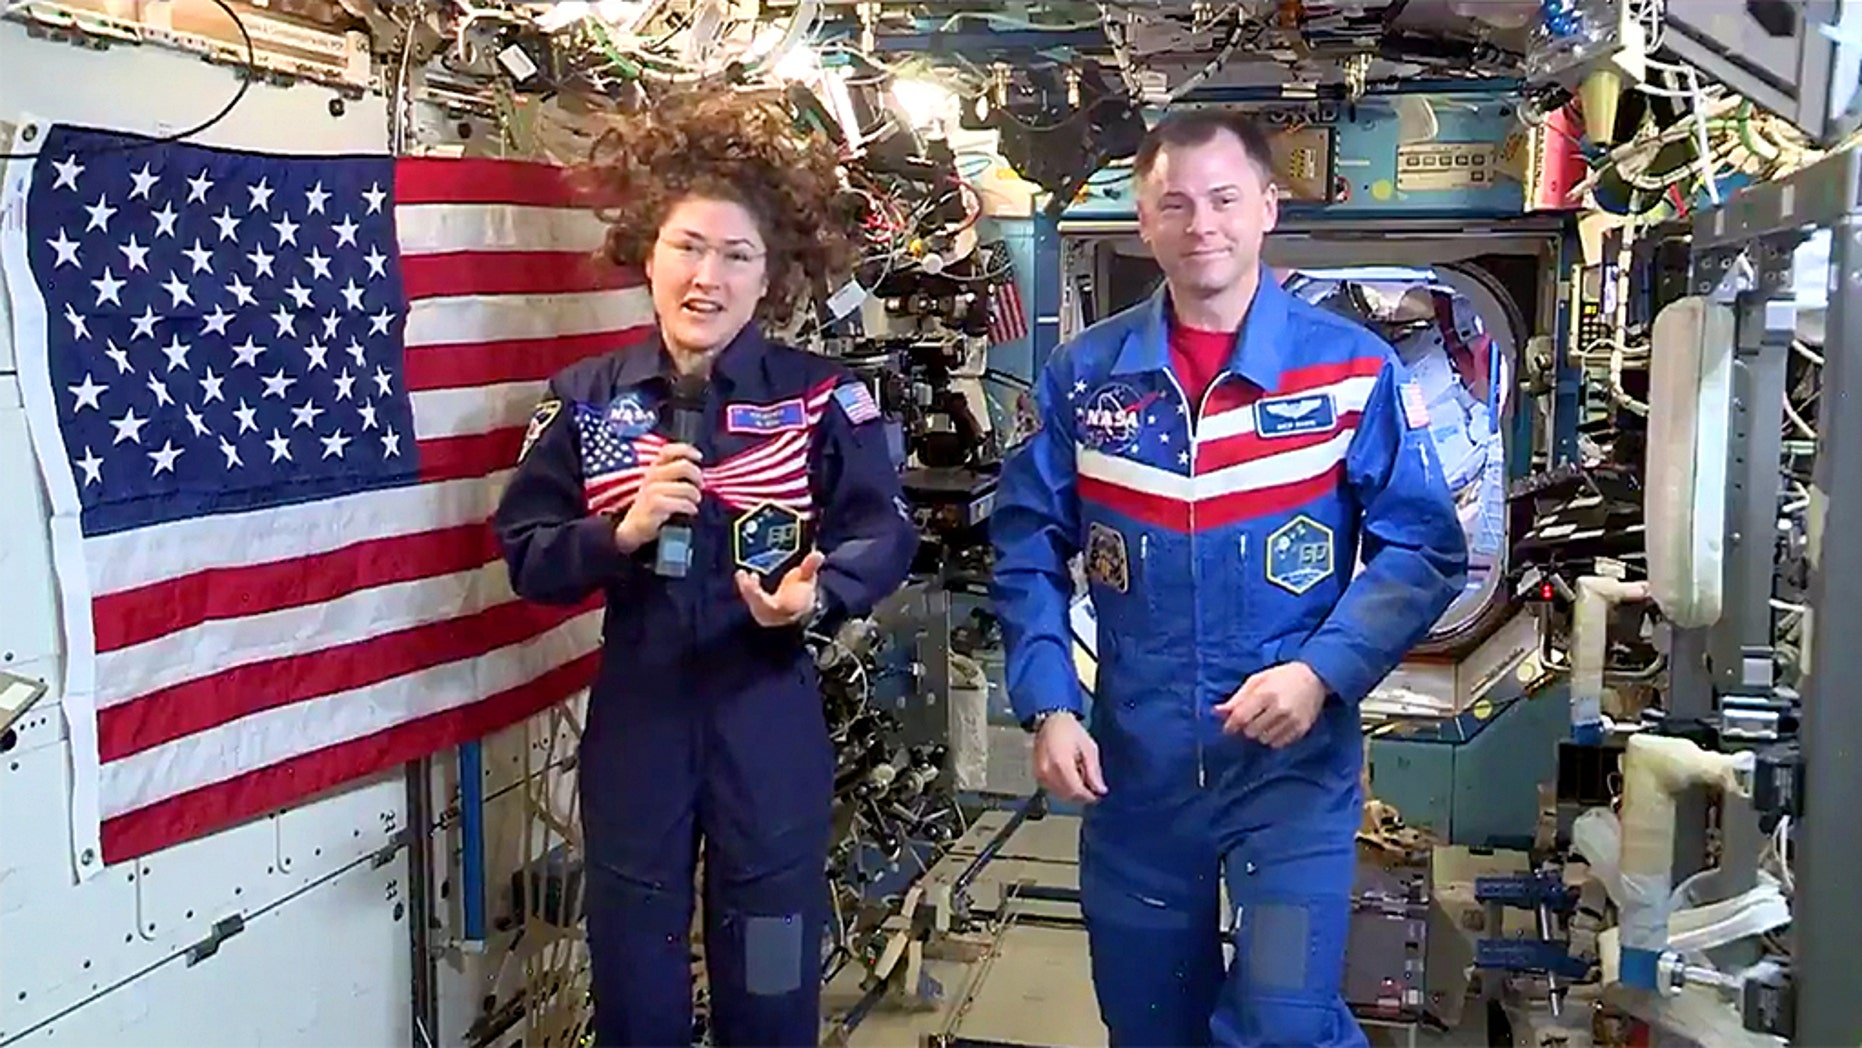 NASA astronauts Christina Koch and Nick Hague delivered their Independence Day message from the International Space Station.